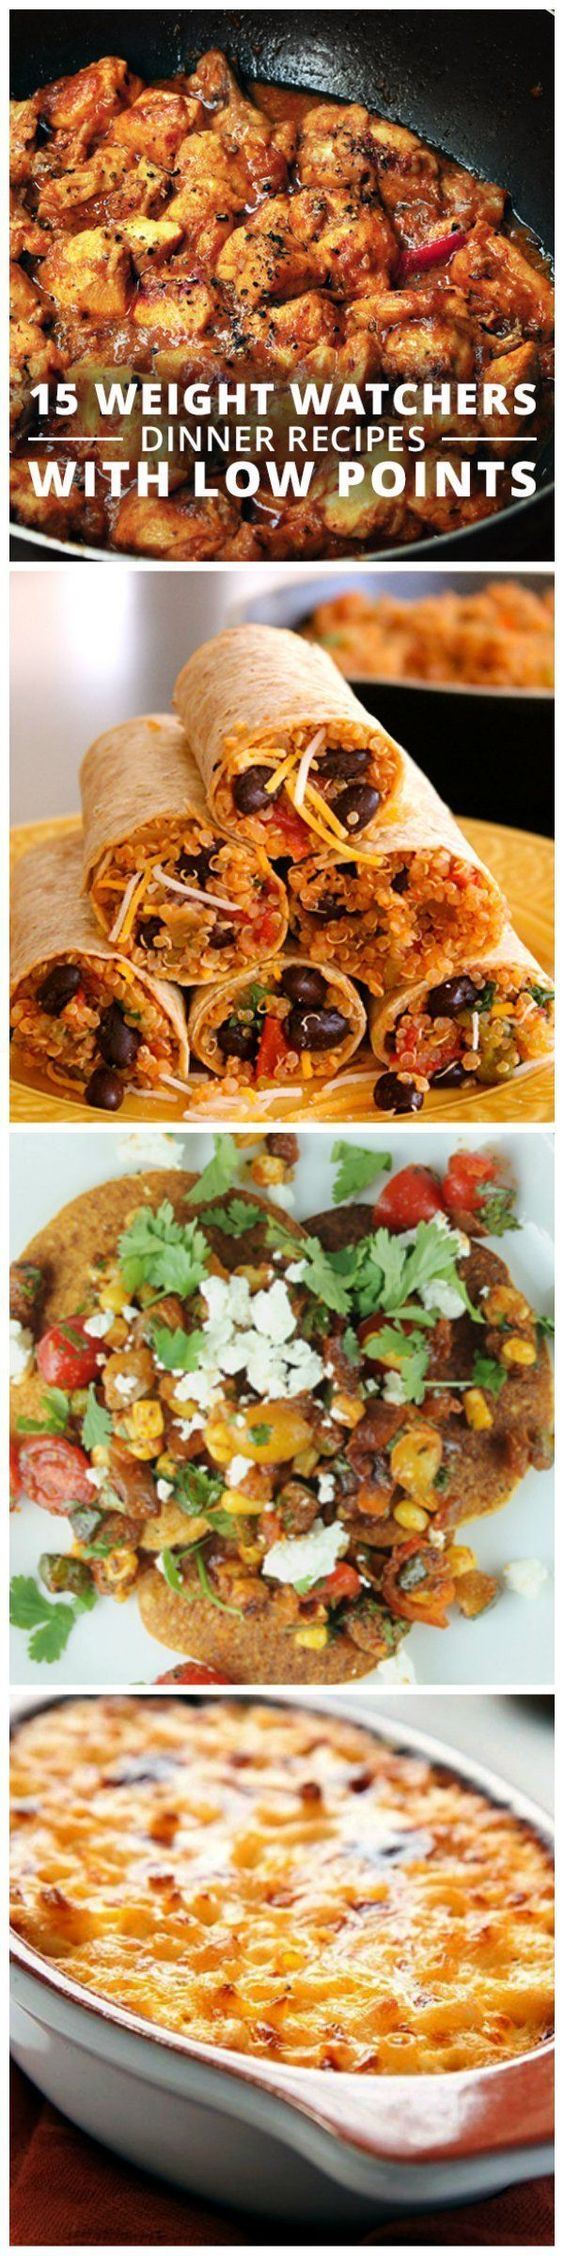 15 Weight Watchers Dinner Recipes with Low Points #weightwatchers #wwpoints #lowcalorie